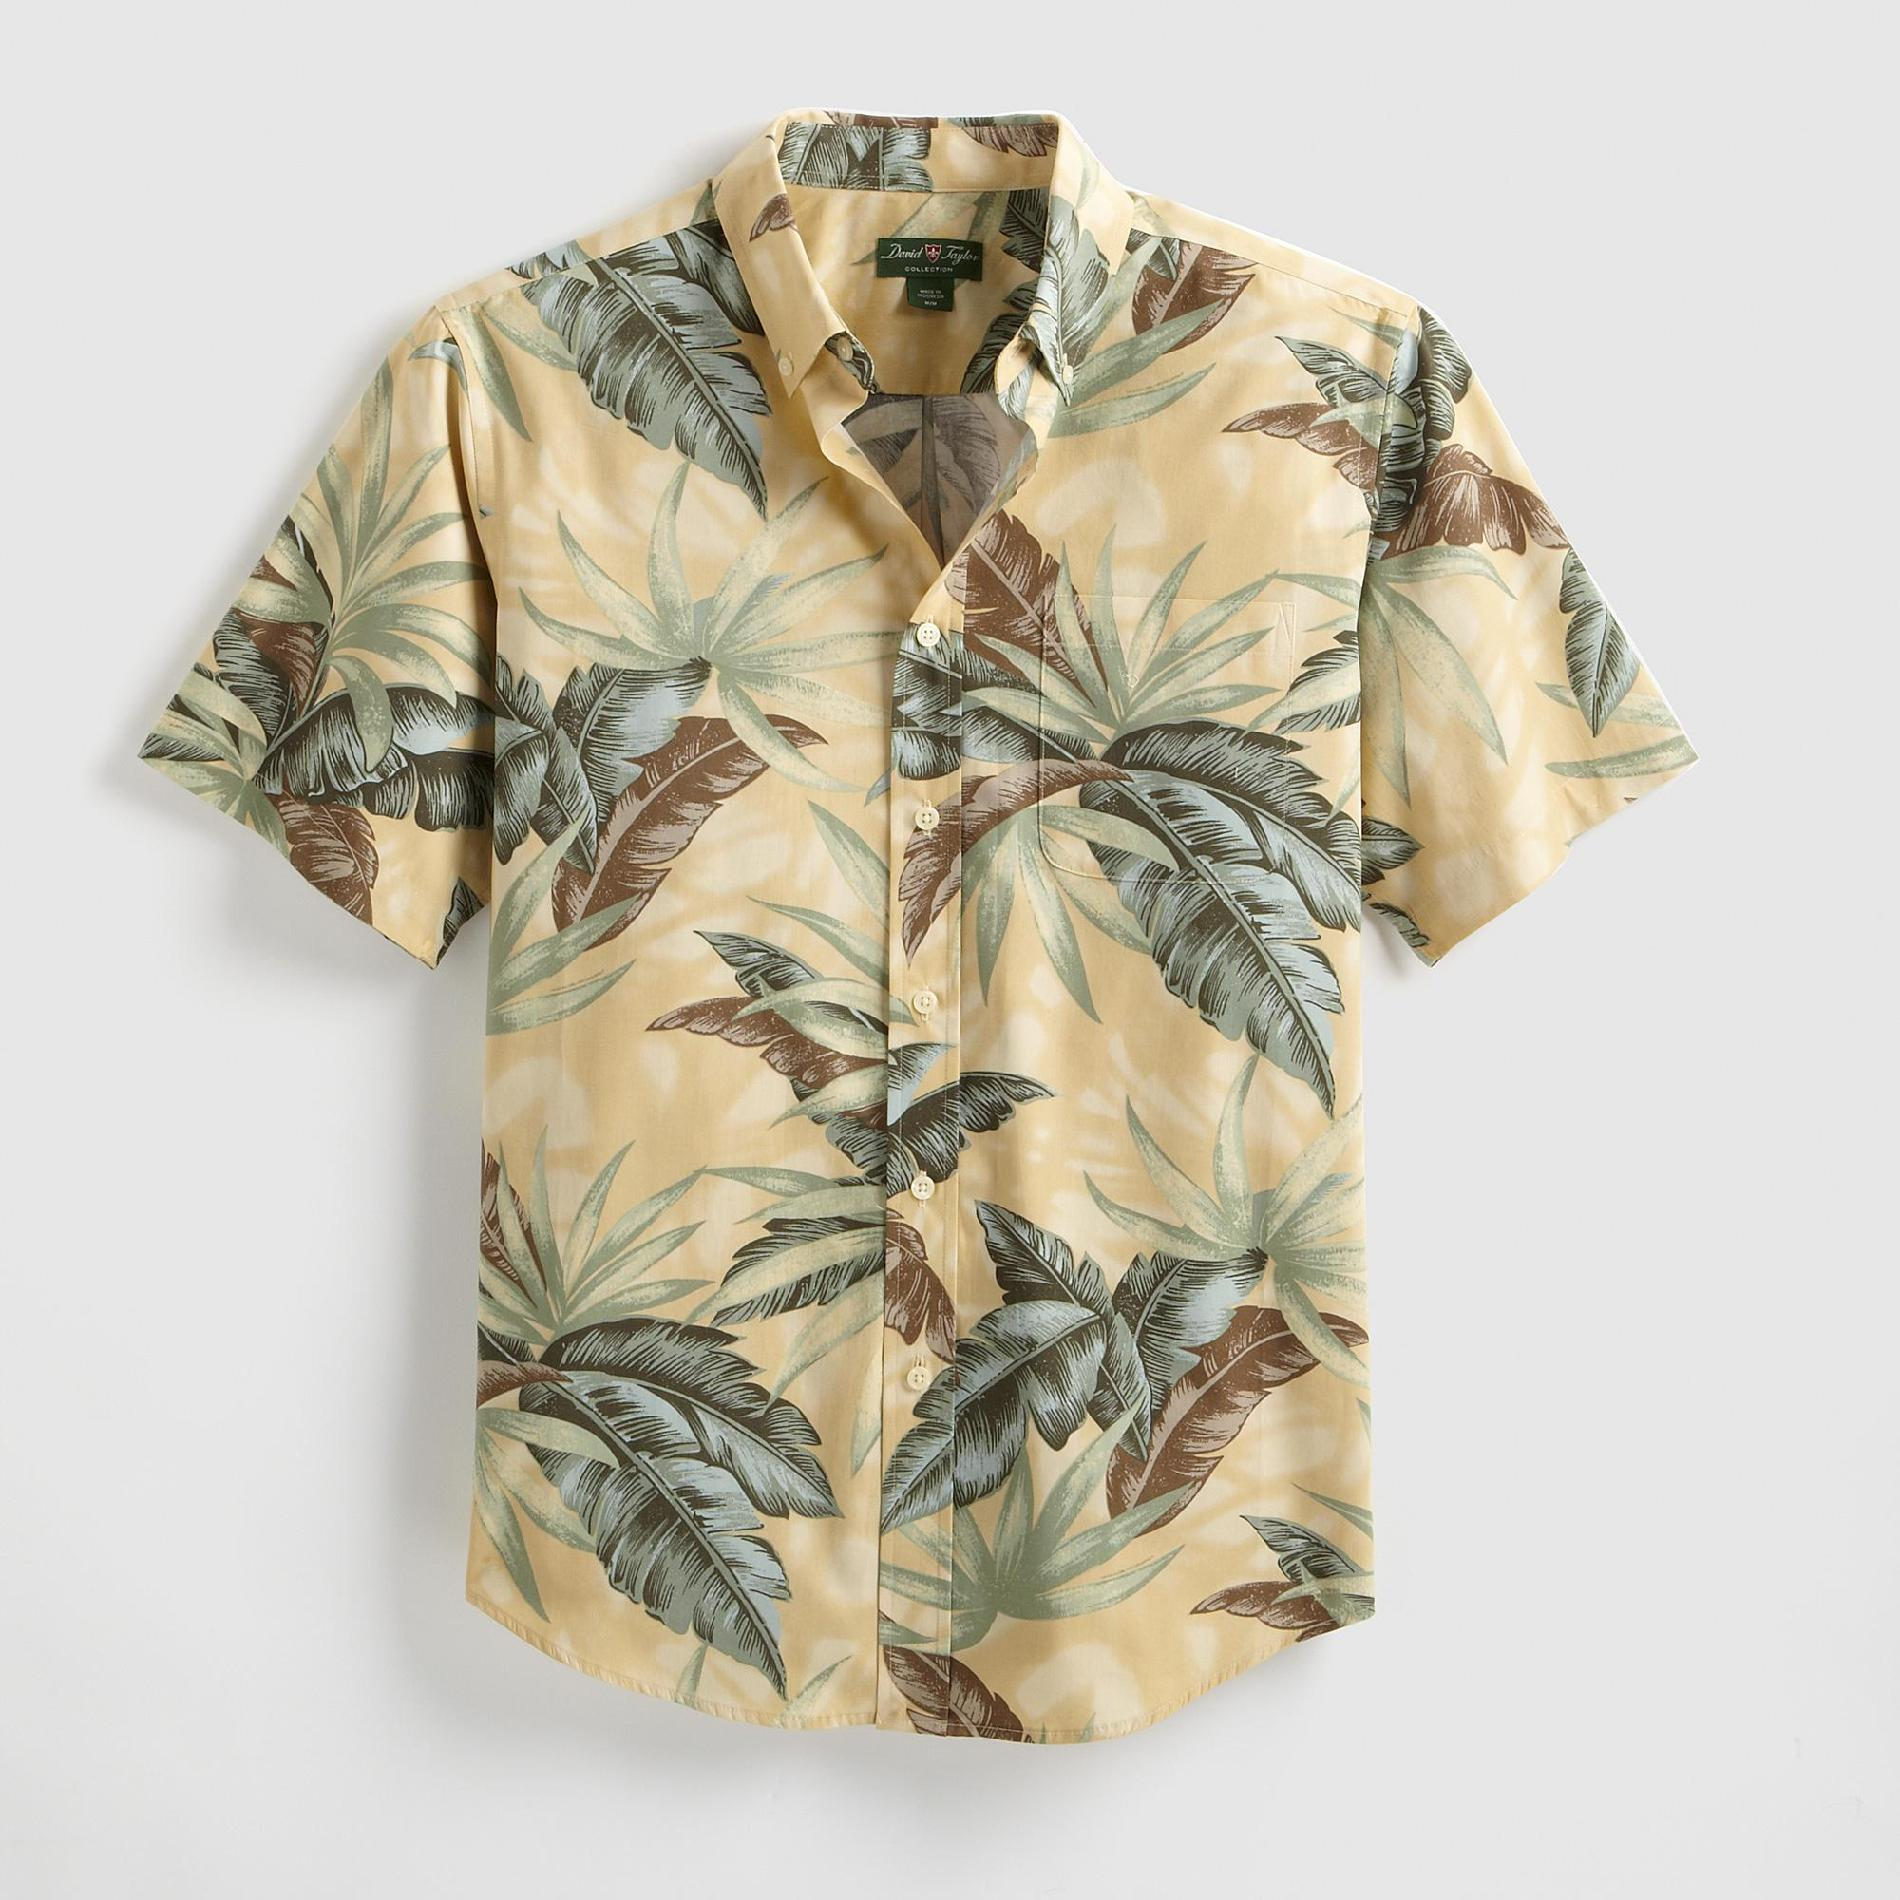 David Taylor Men's Woven Shirt - Palm Fronds at Kmart.com